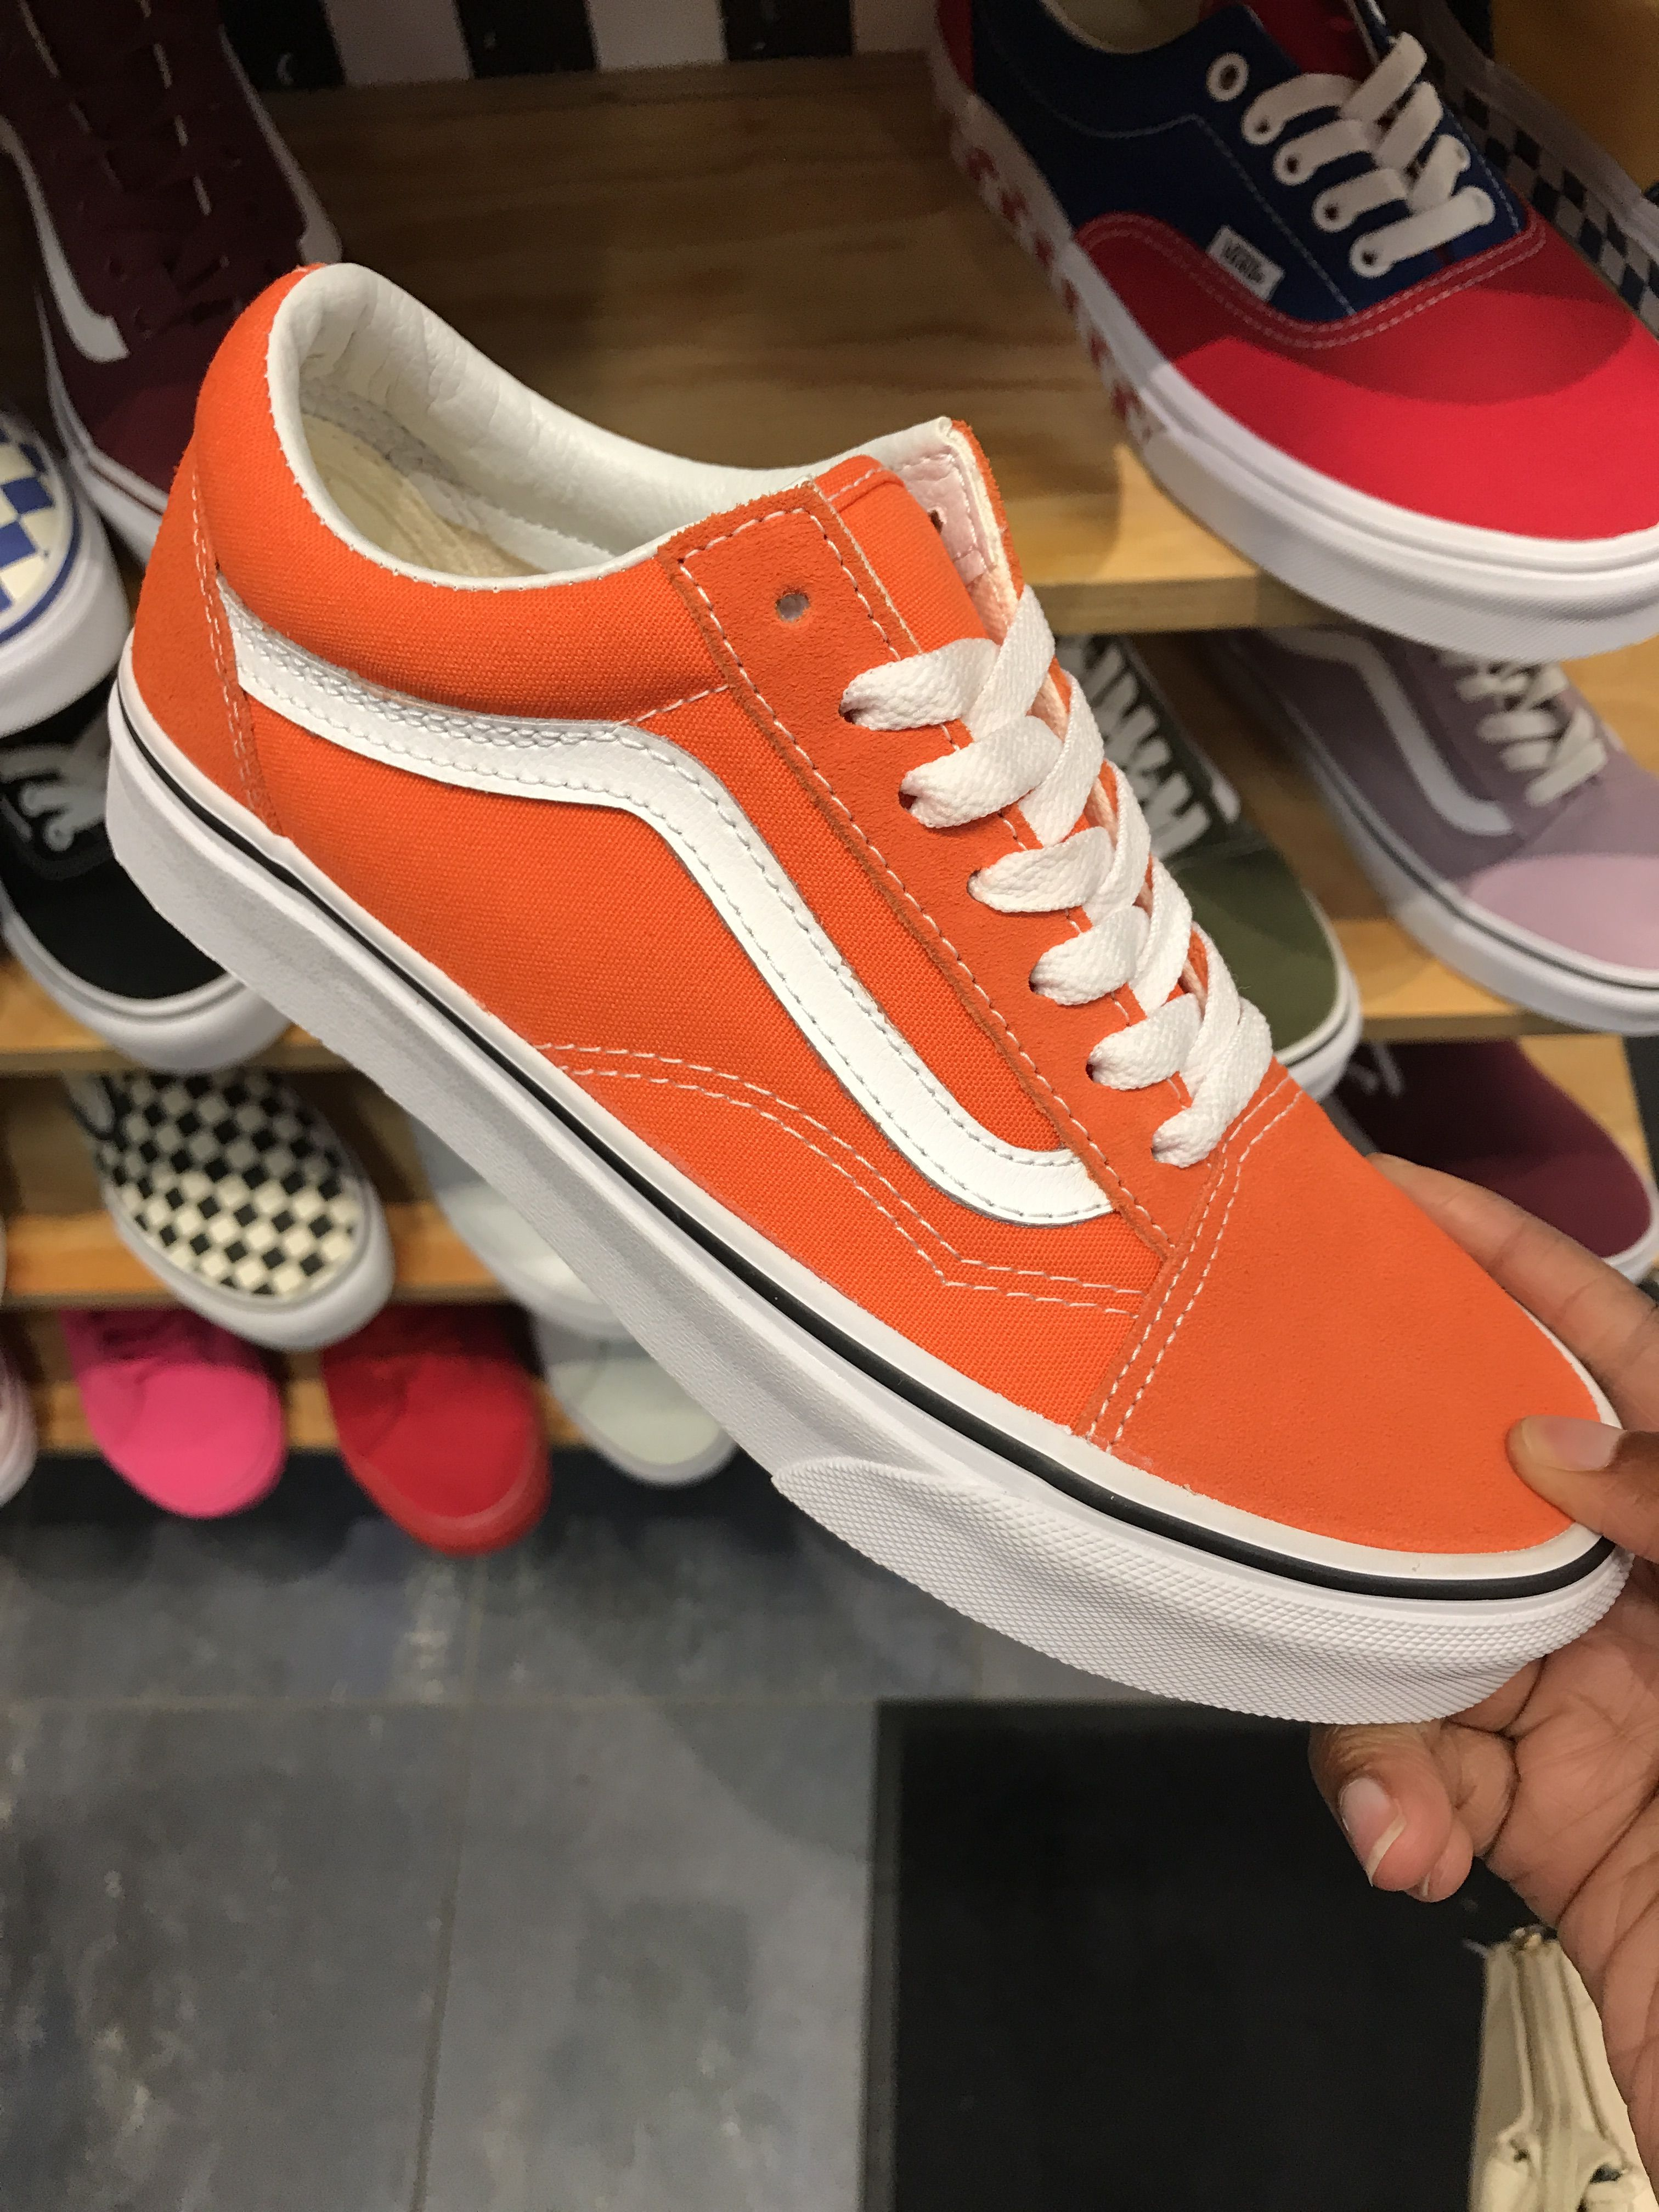 Follow@Ms.Love | Orange vans, Orange shoes, Vans